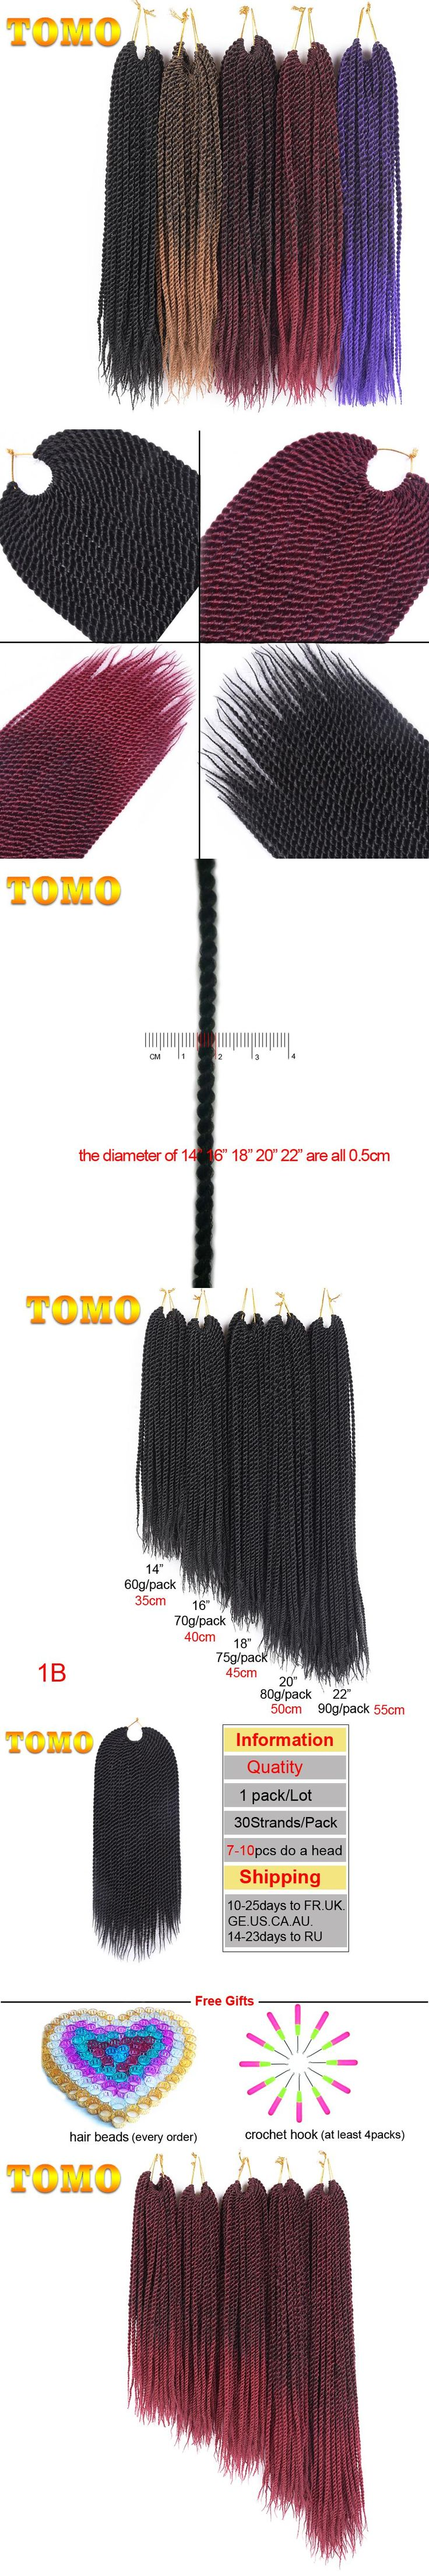 """TOMO Products 14"""" 16"""" 18"""" 20"""" 22"""" 30Strands Small Senegalese Twist Crochet Braids Ombre Kanekalon Synthetic Braiding Hair"""